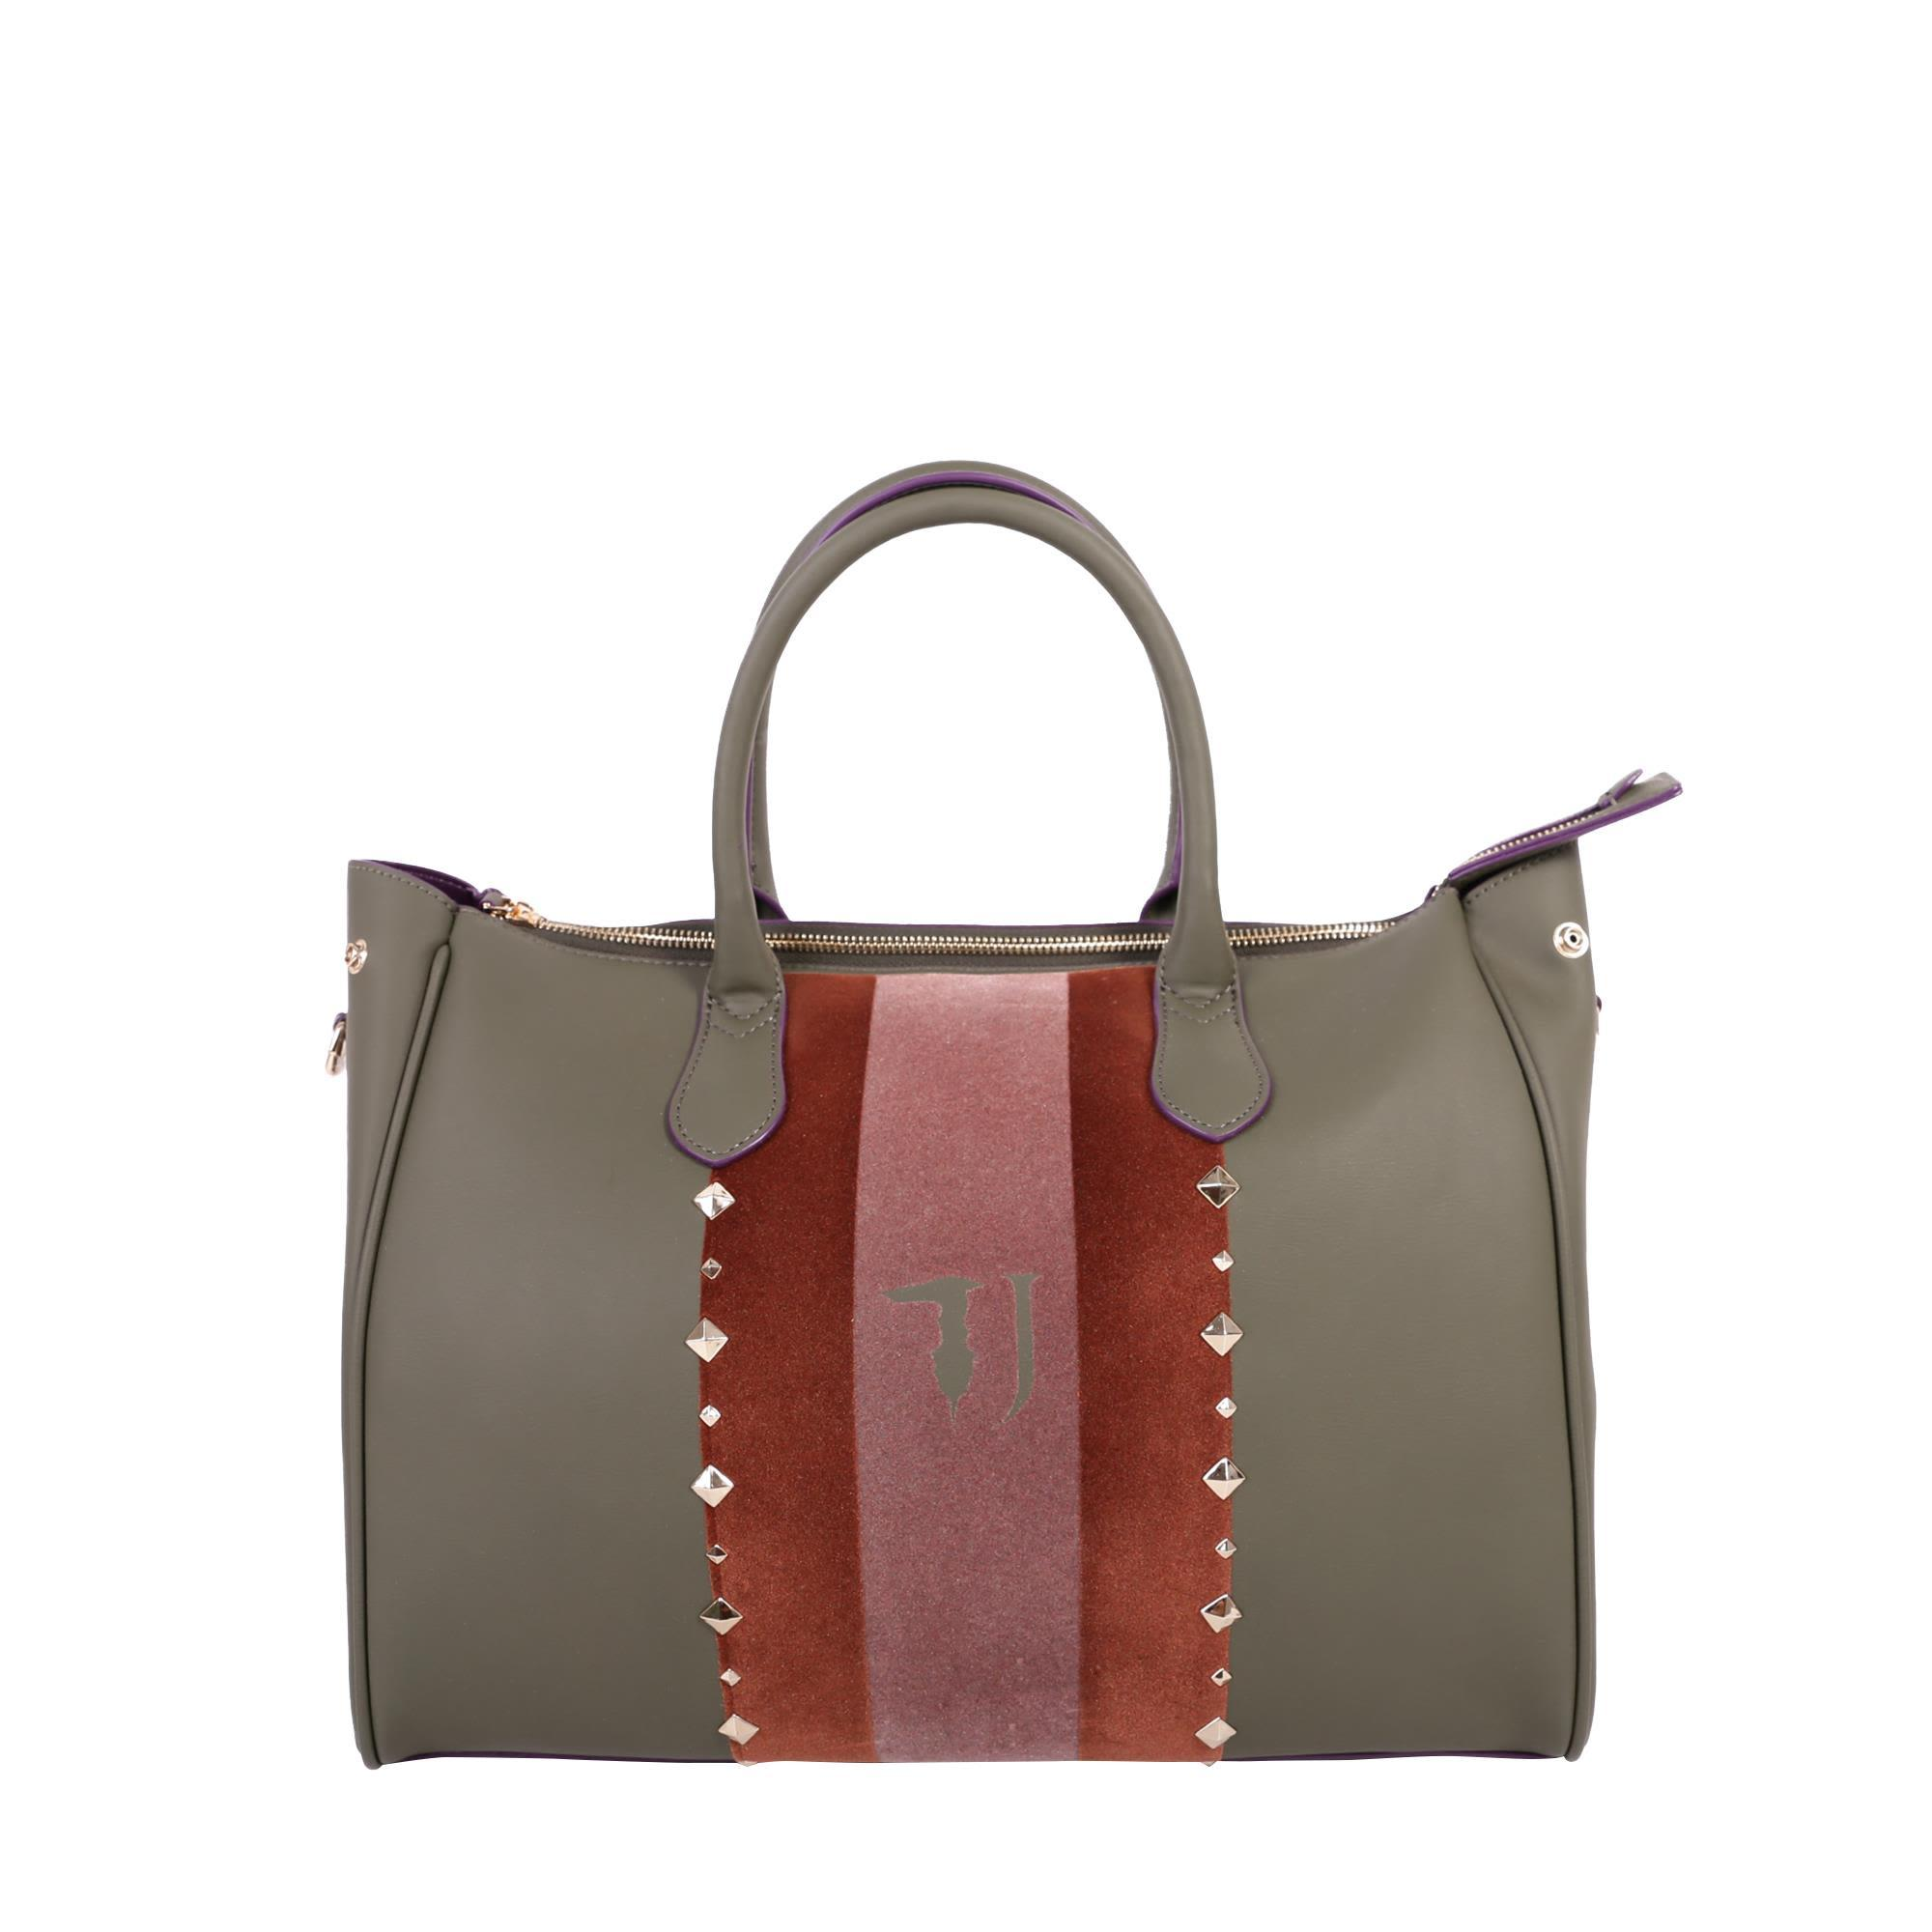 Trussardi Blondie Faux Leather Tote Bag In Military Green